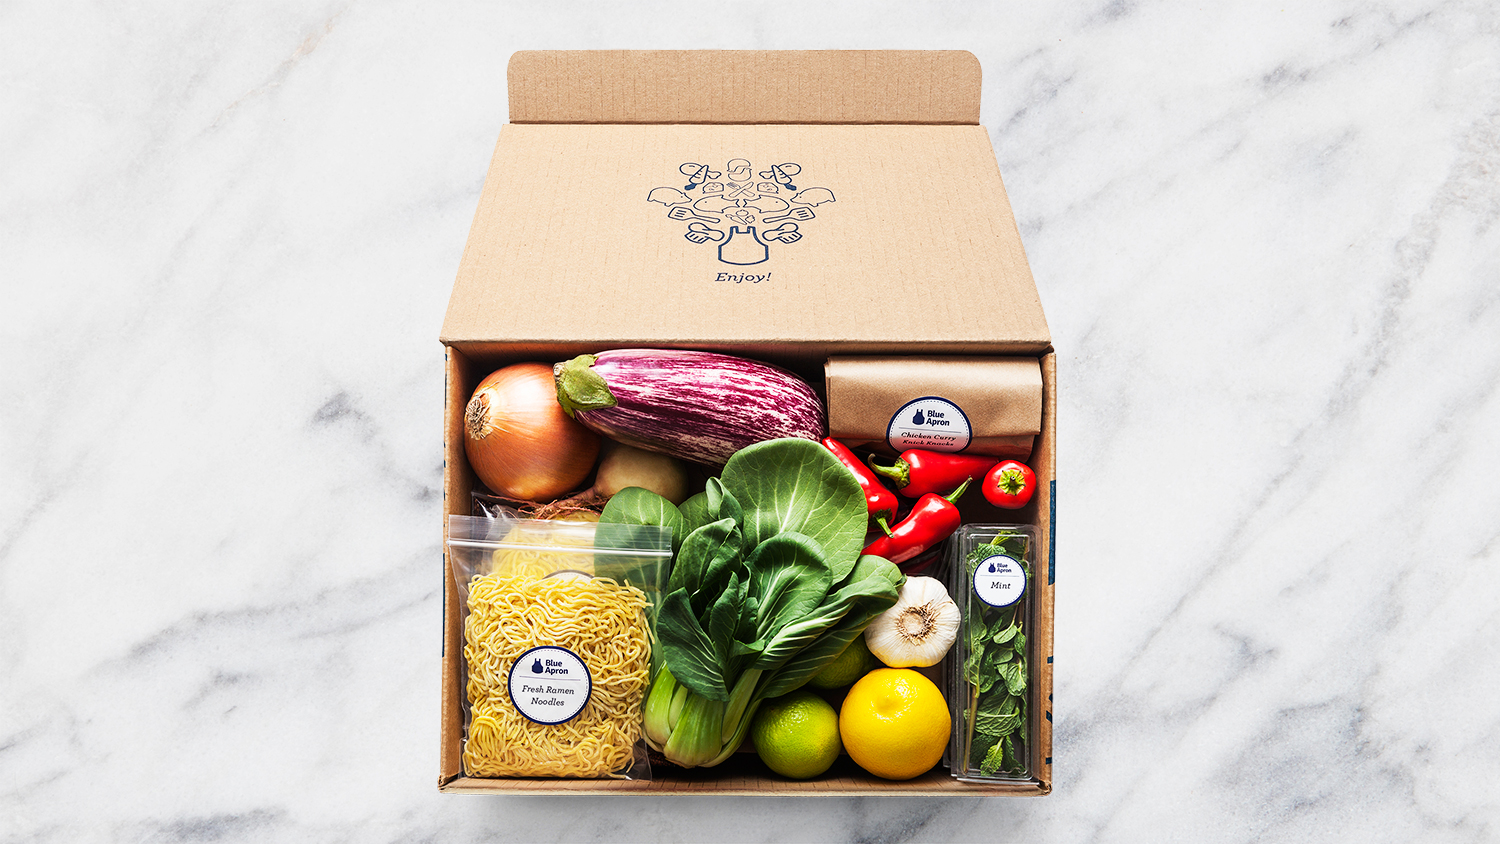 Meal Kits Are A Lsquo Threat Rsquo To Restaurants Study Says Food